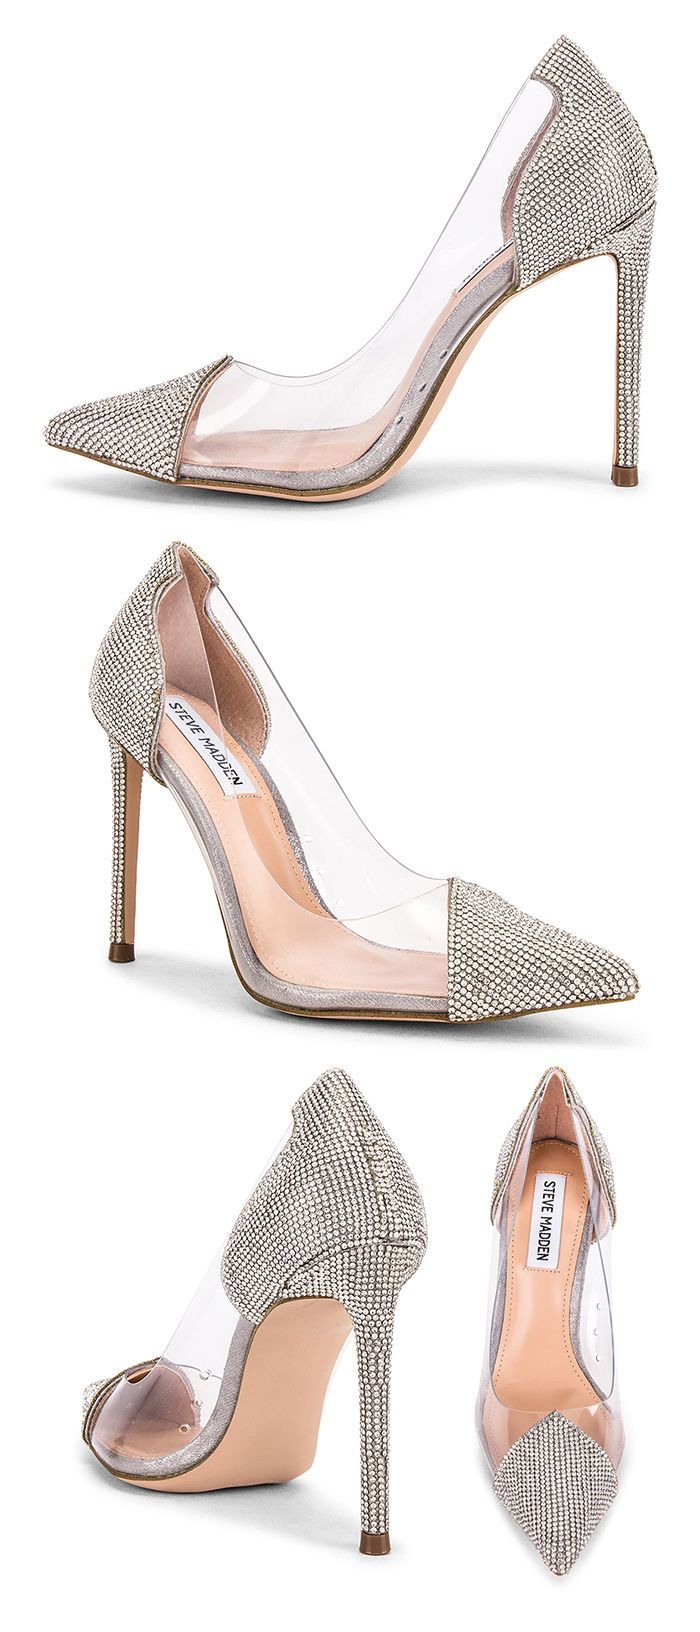 Silver Crystal High Heel Party Shoes Wedding Guest Outfit Ideas Fashion Shoe Addict A Steve Madden Shoes Heels Shoes For Wedding Guest Fashionista Shoes